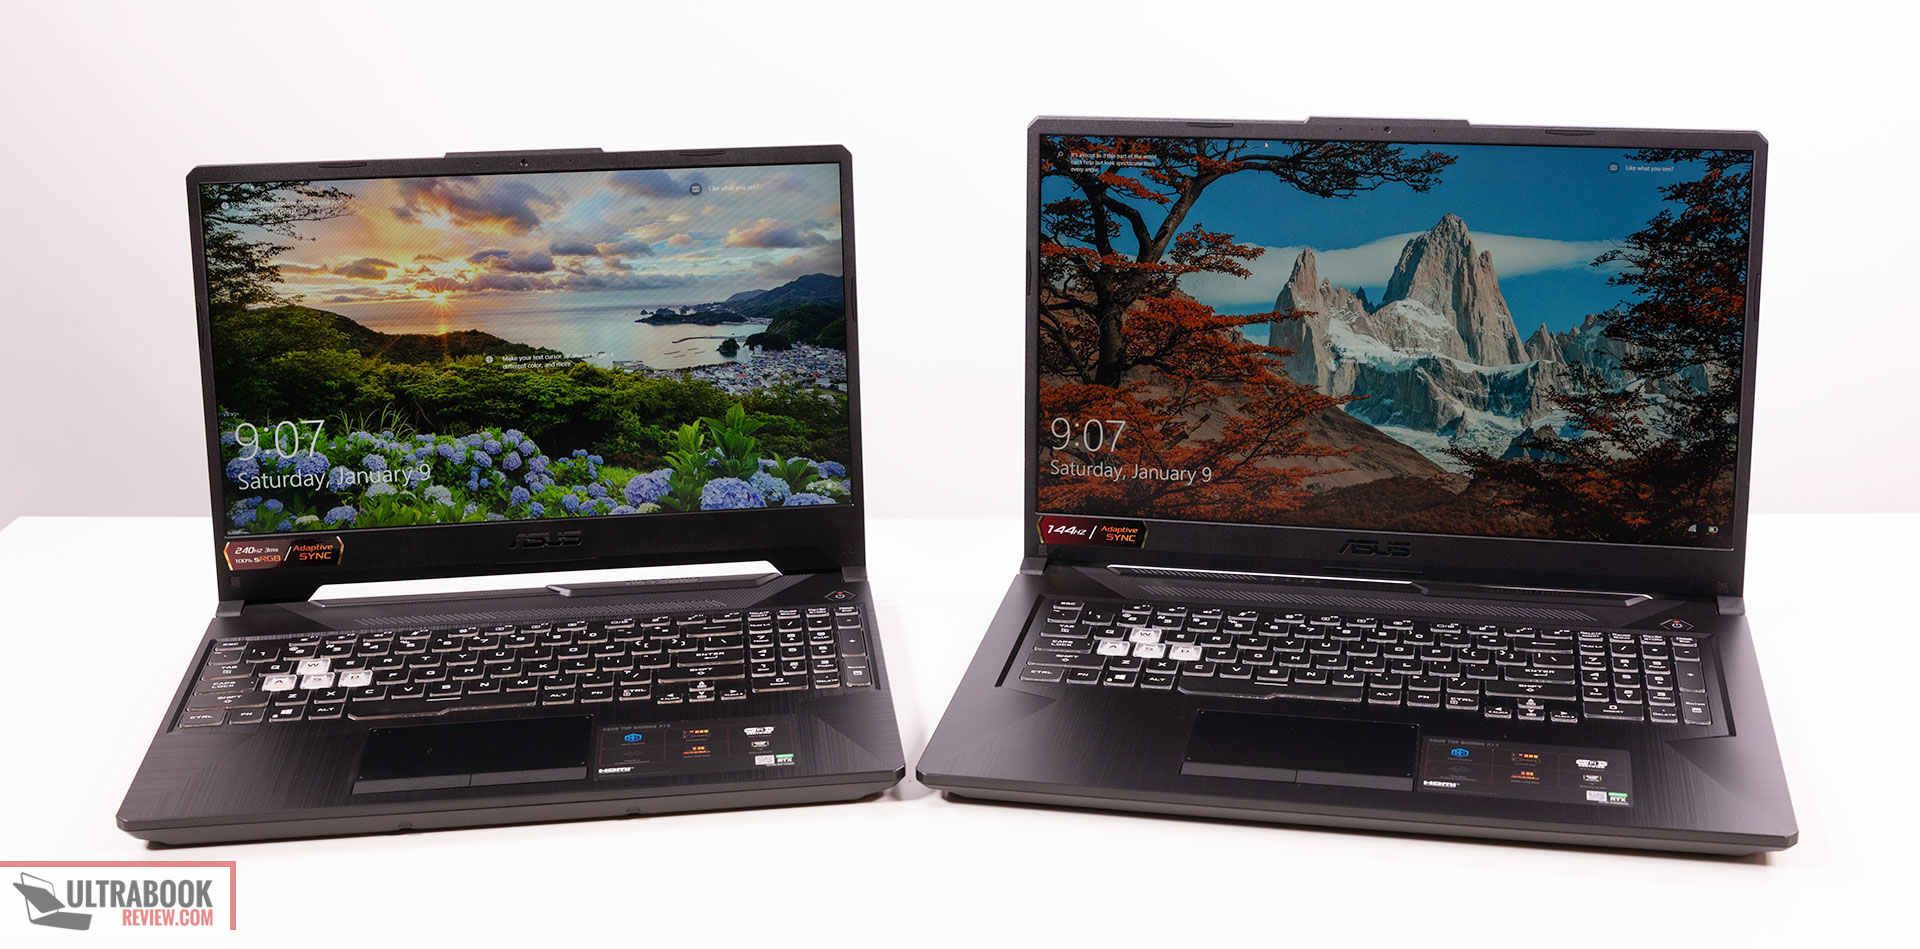 2021 Asus TUF Gaming A15 and A17 laptops